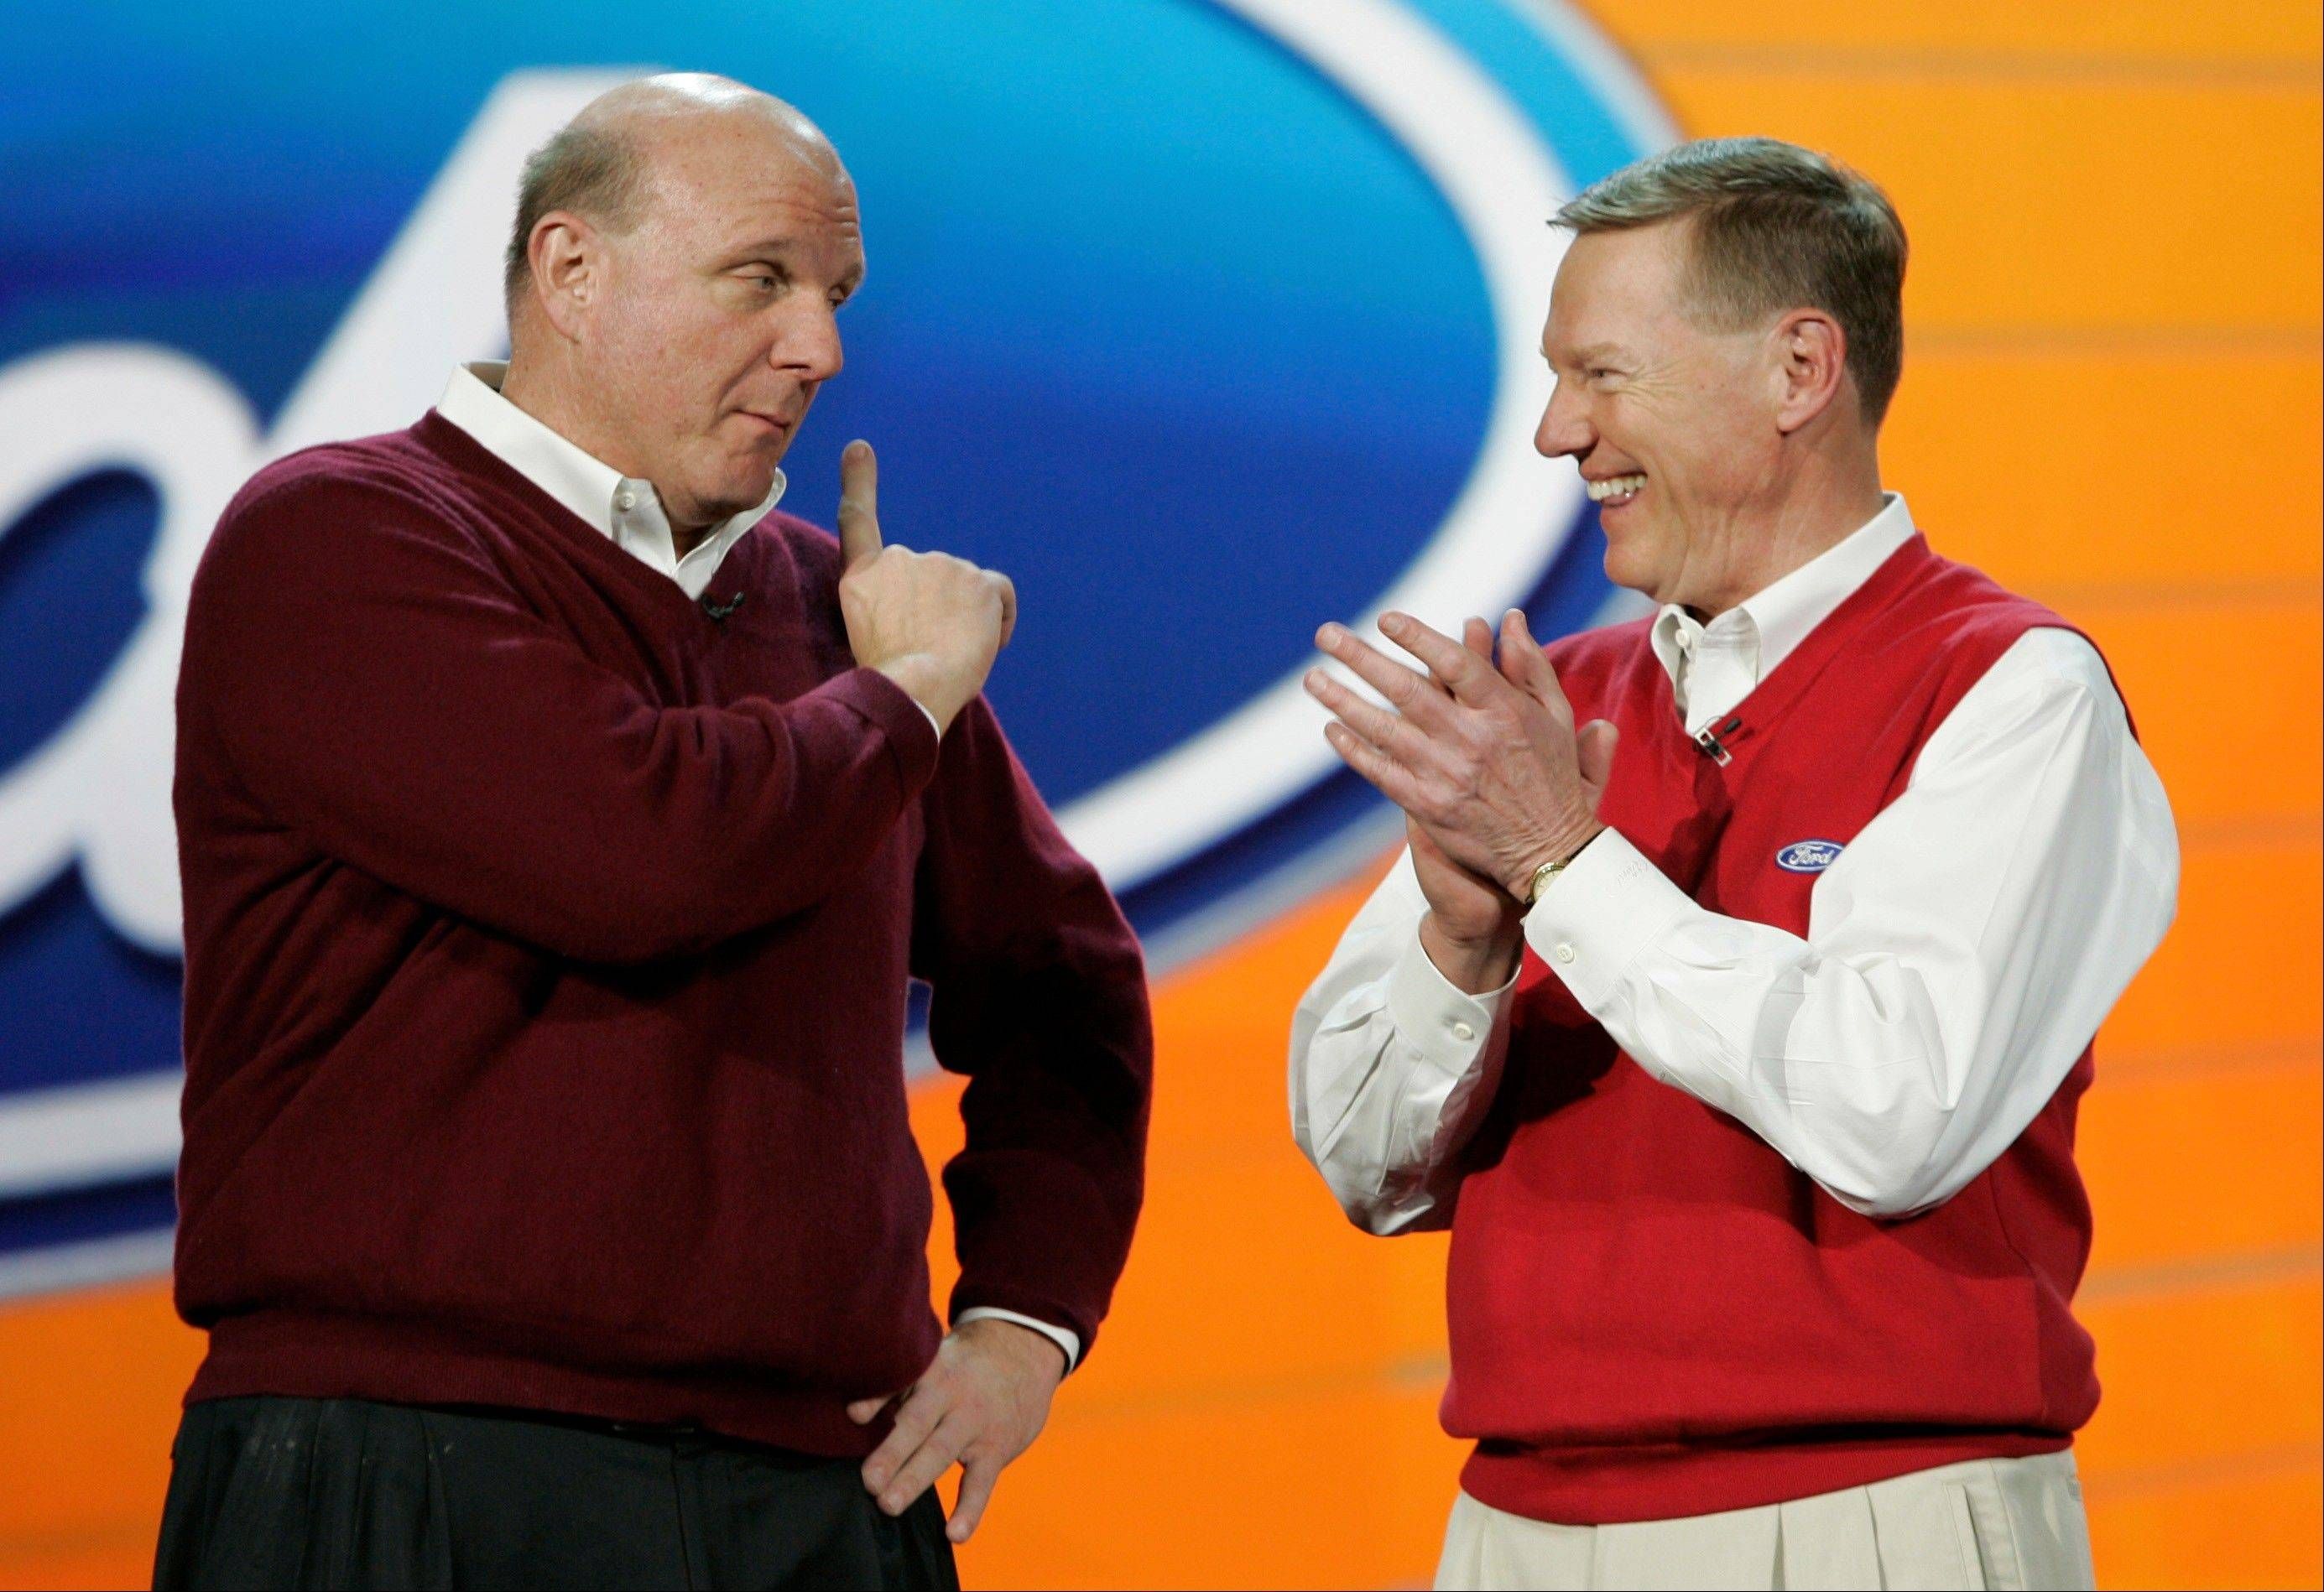 Ford Motor Company CEO and President Alan Mulally, right, listens to Microsoft CEO Steve Ballmer, left, during Mulally's keynote address at the International Consumer Electronics Show (CES) in Las Vegas. Mulally said Tuesday he's made no changes to his plan to stay at Ford through the end of 2014. But he hasn't denied rumors that Microsoft Corp. is courting him.